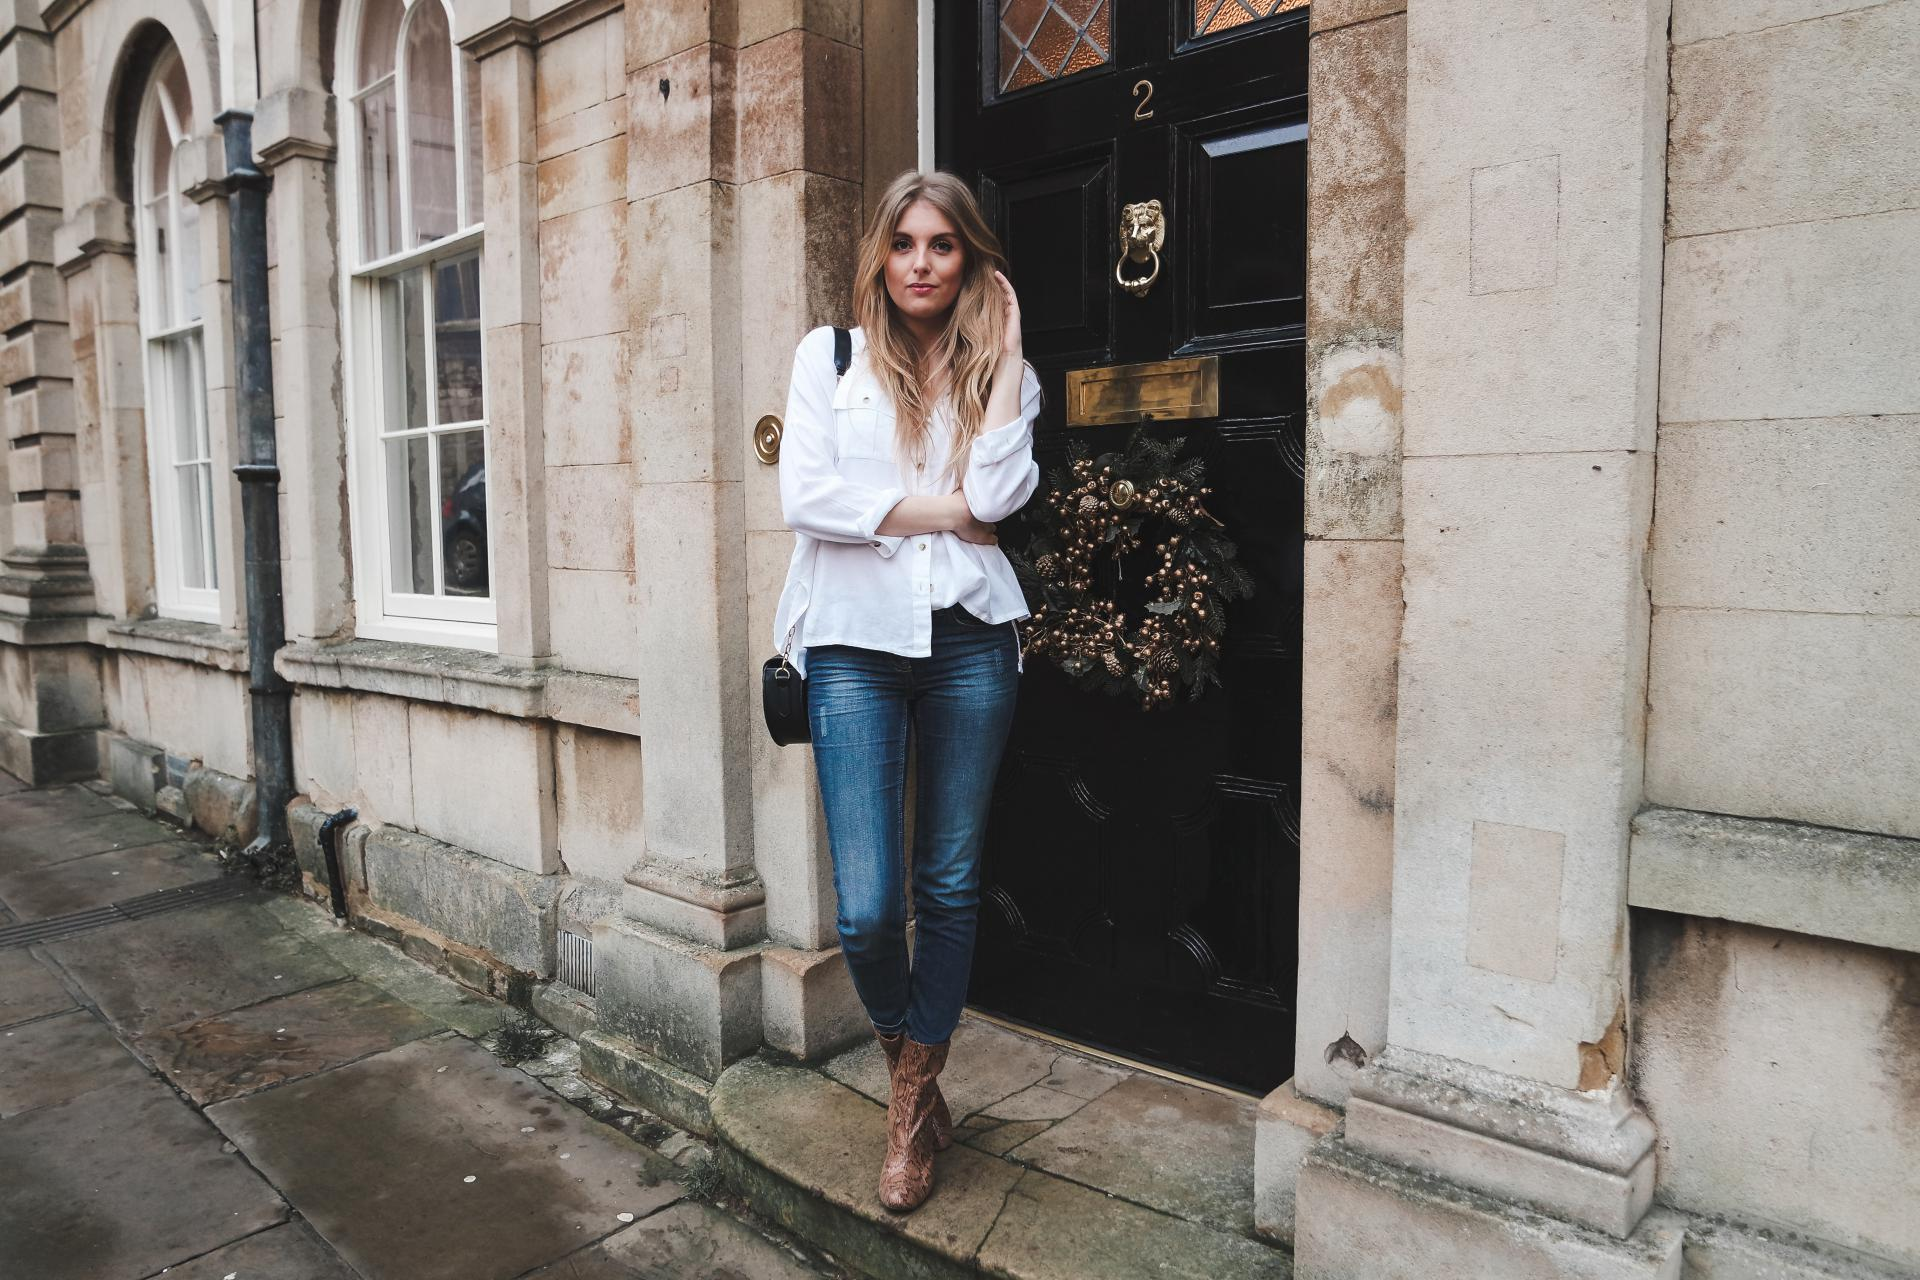 Blue Jeans, White Shirt Outfit